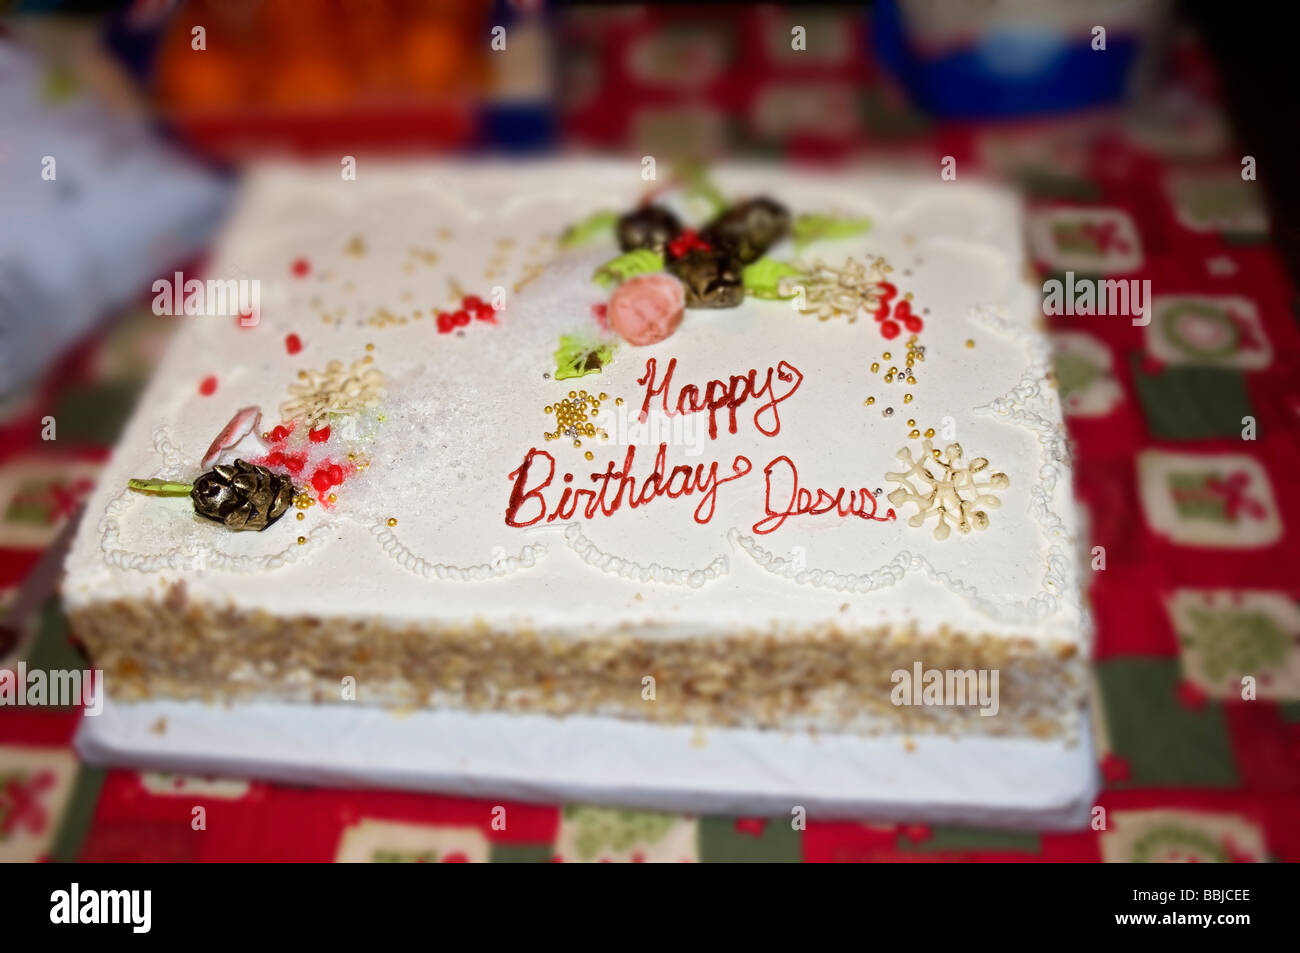 Stupendous Happy Birthday Jesus Christmas Birthday Cake At Local Church Stock Personalised Birthday Cards Veneteletsinfo